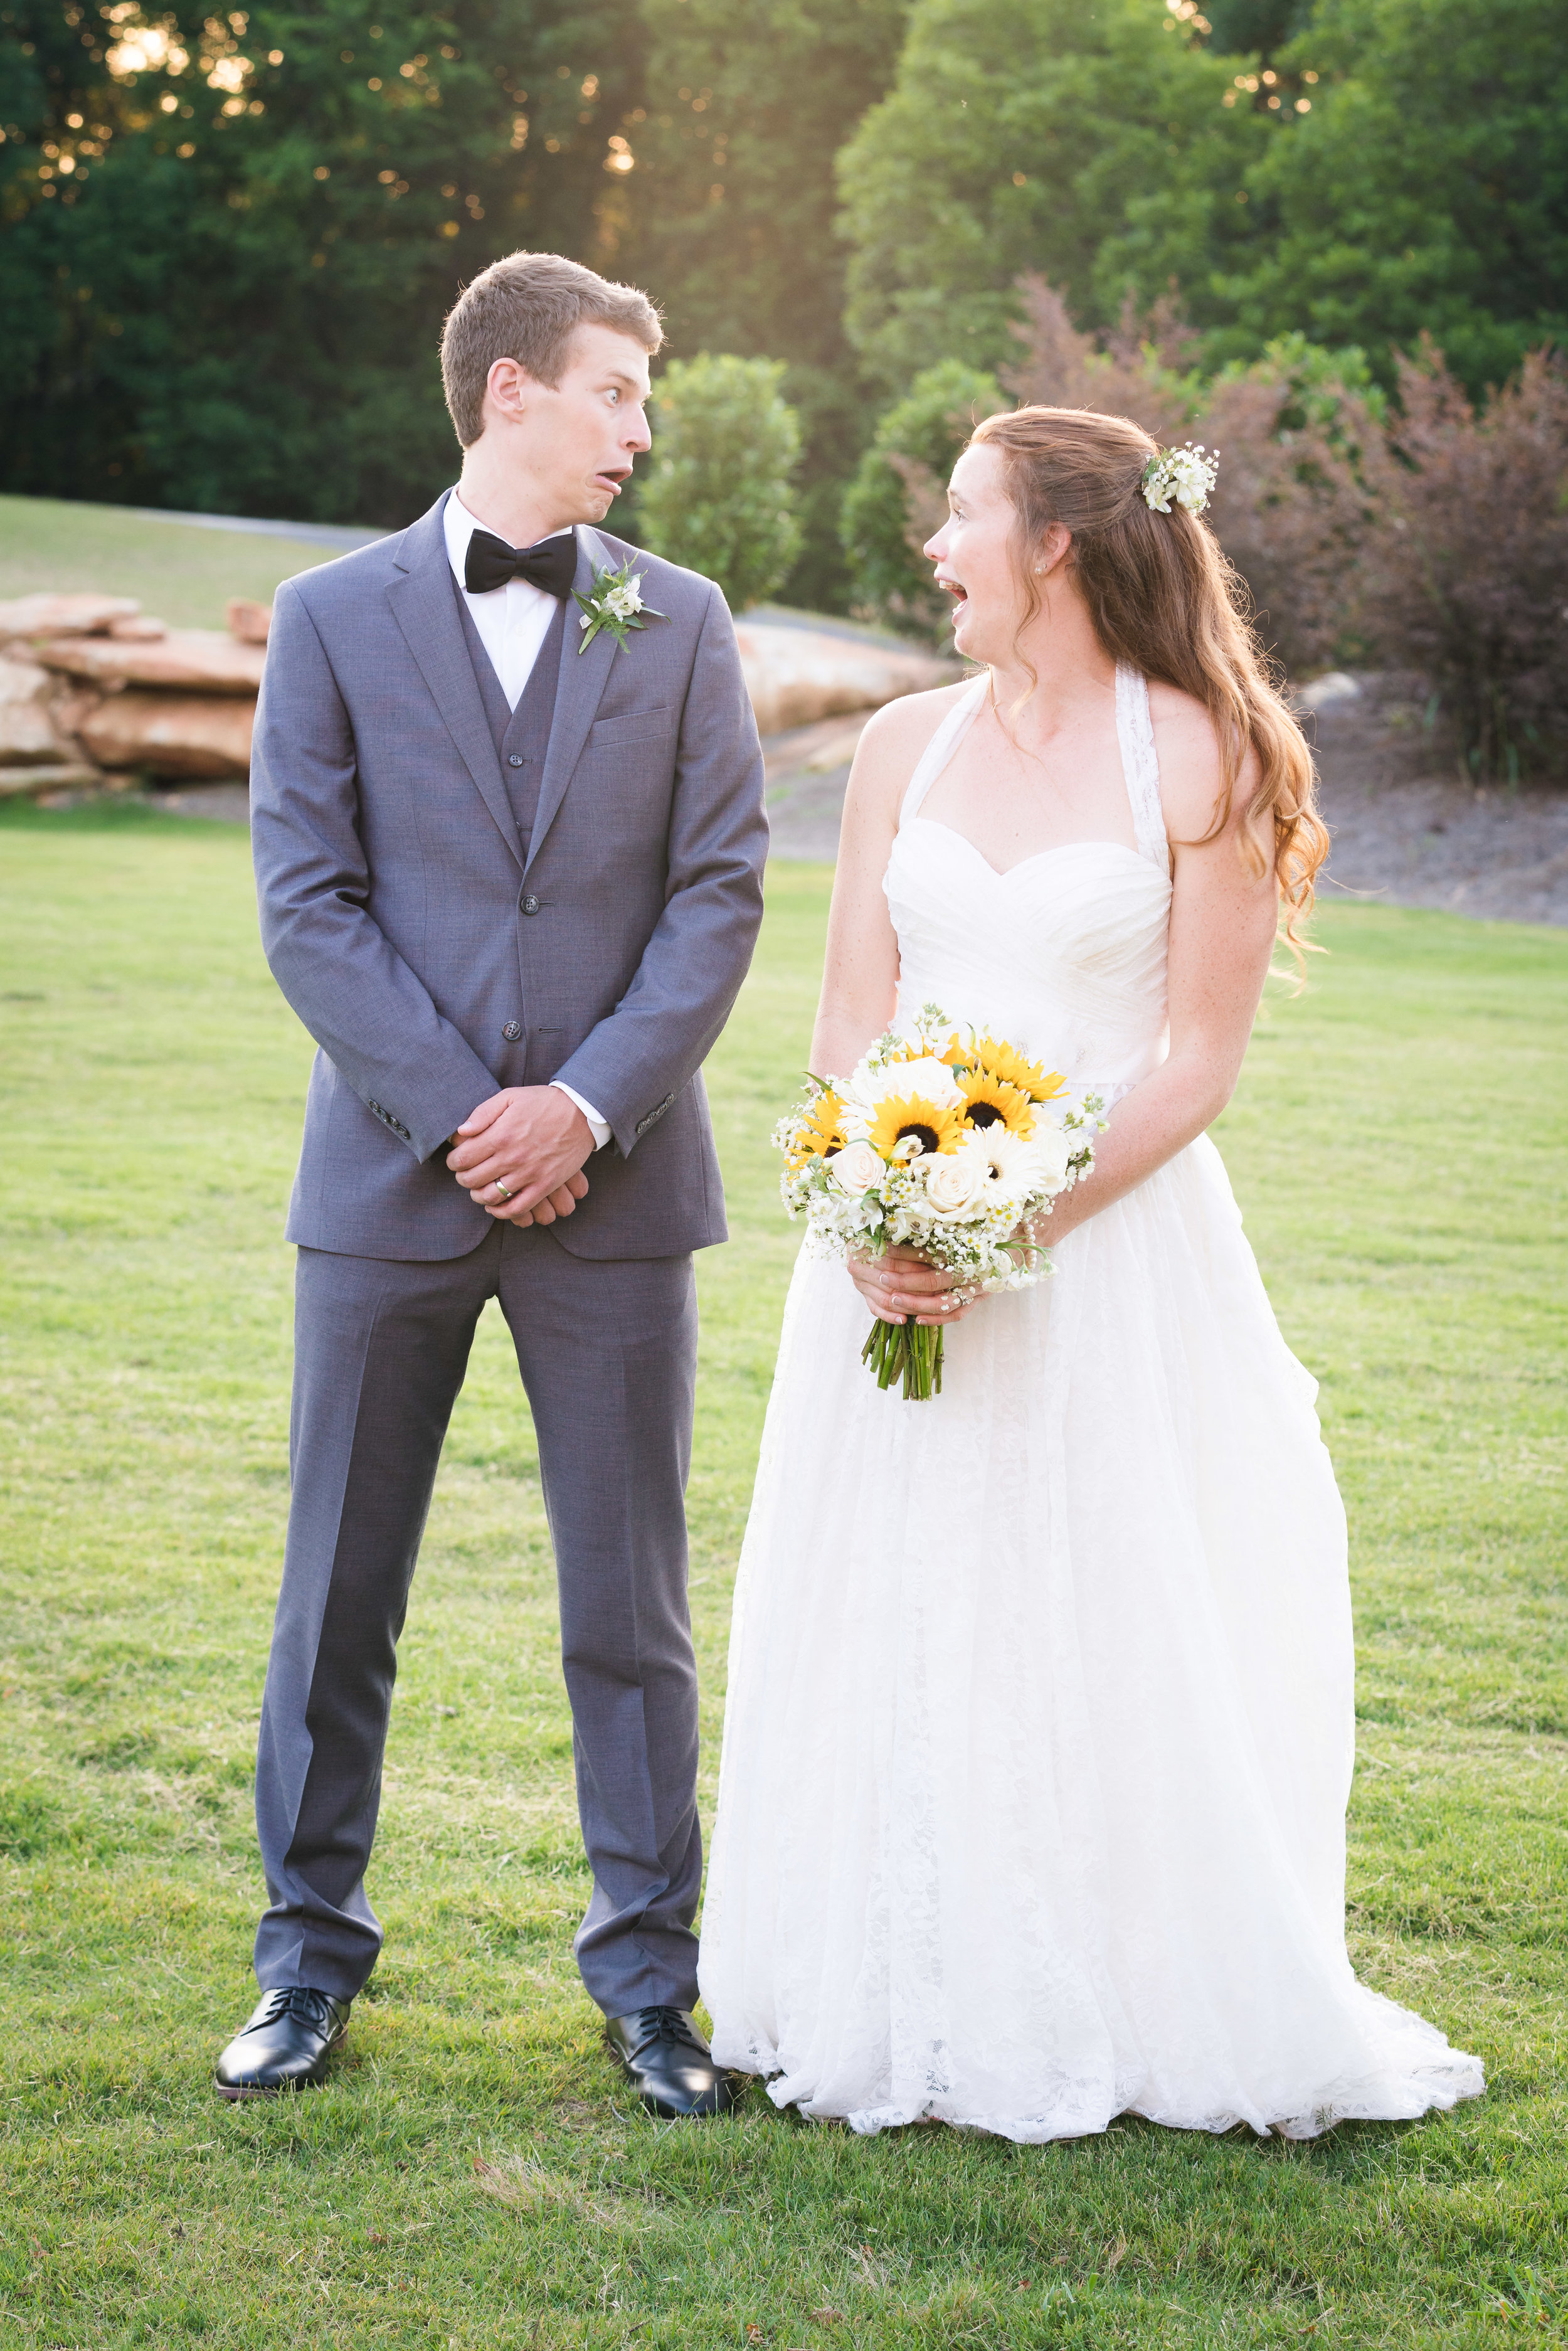 Bride and groom funny portrait | Windy Hill Wedding and Event Barn in Simpsonville, SC